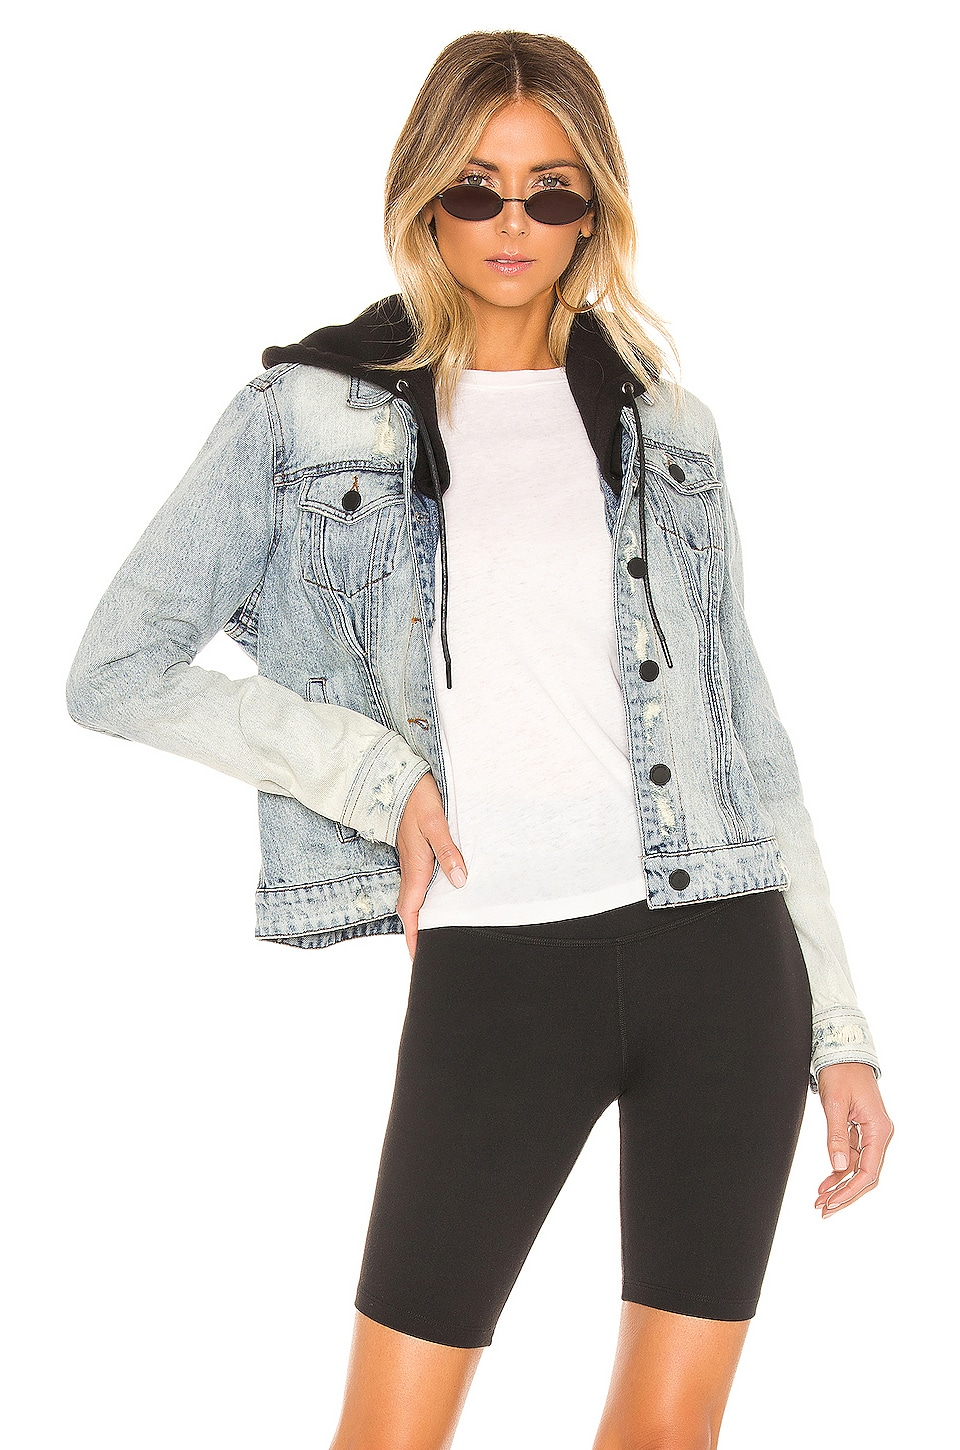 Casual Encounter Jacket             BLANKNYC                                                                                                       CA$ 170.20 3